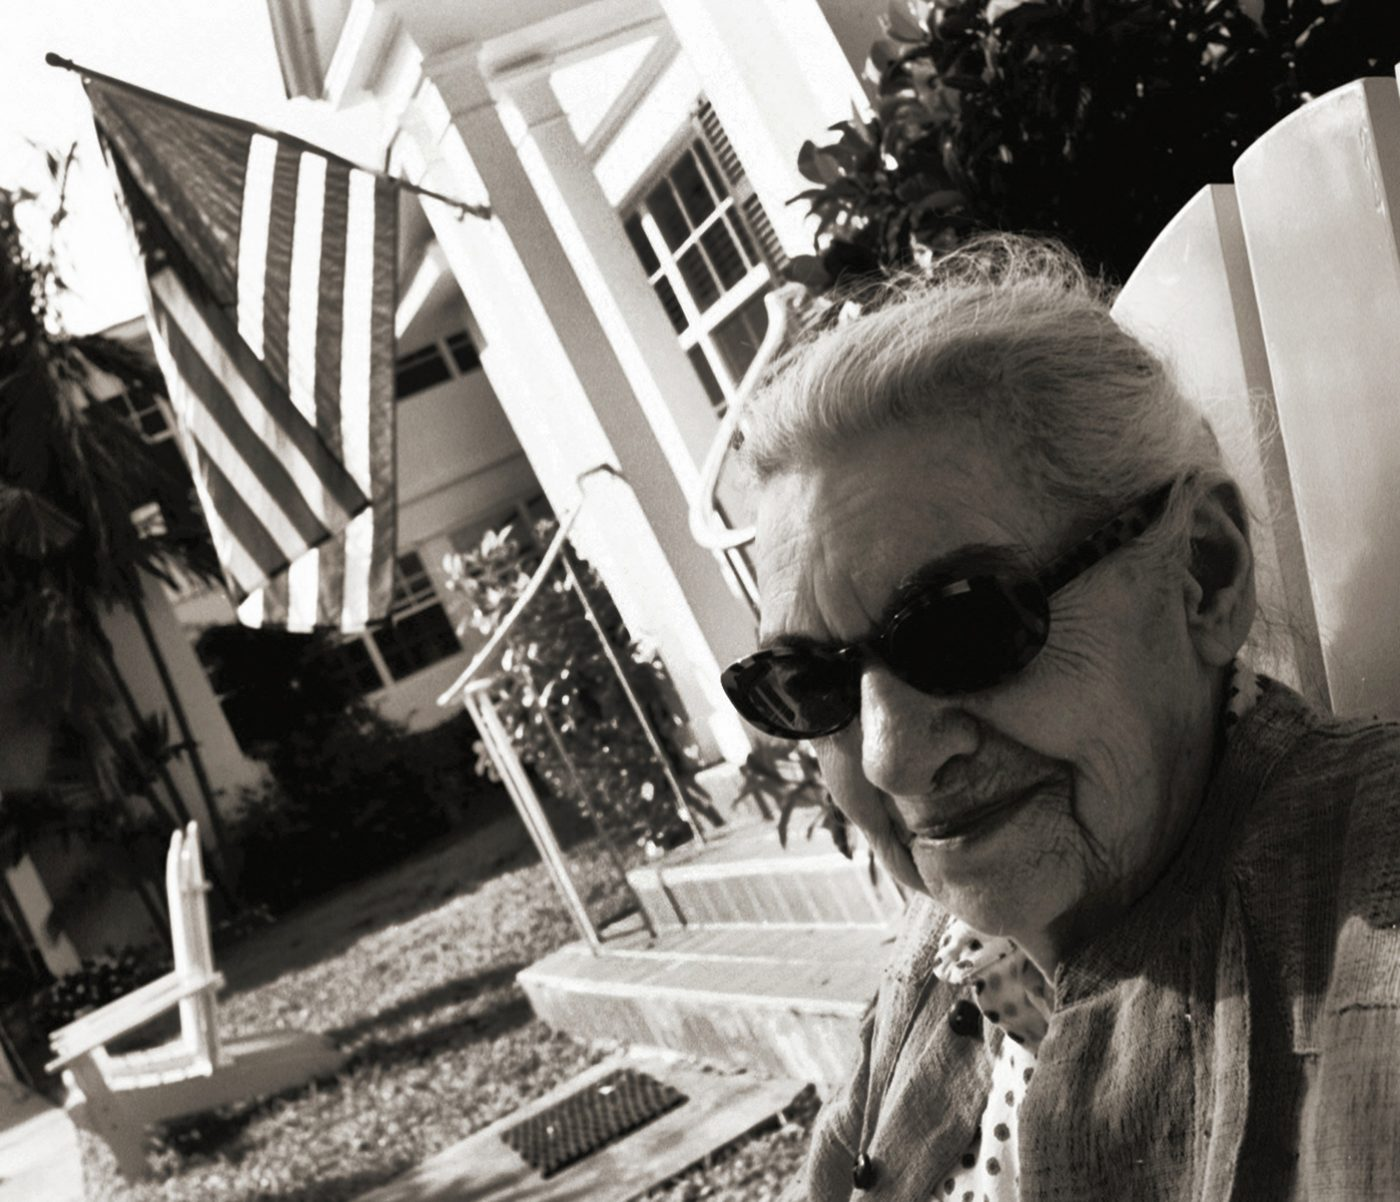 Madje Has Dementia by Maggie Steber (23): Madje with dark glasses: Madje Steber sits in the front lawn of Bay Oaks, an assisted living facility in the heart of Miami, Florida, after being moved there by her daughter when she could no longer live alone. Madje loved it and blossomed. There were little dogs and a few cats that lived there. She only stayed here for one year because she began to wander and had to move to Midtown Manor in Hollywood, Florida. COOL MADJE